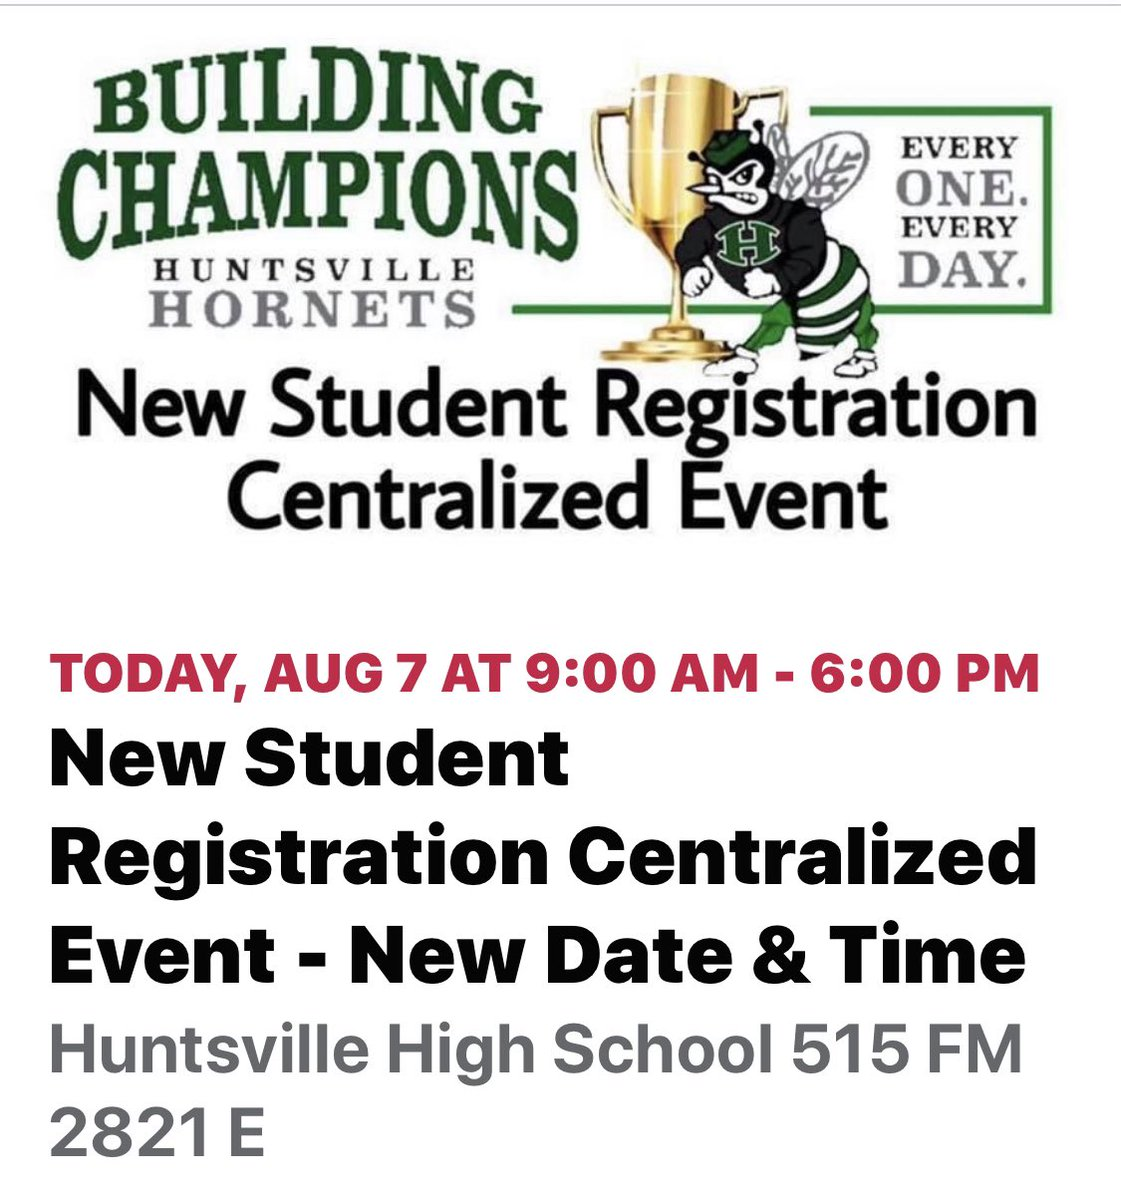 Come see us TODAY from 9-6 @ HHS for support with new or returning student registration!!   Please do not bring children & only 1 parent per family should attend.  Be prepared to wait in line.  Doors will close promptly at 6 so please plan ahead.  See all details on HISD website.